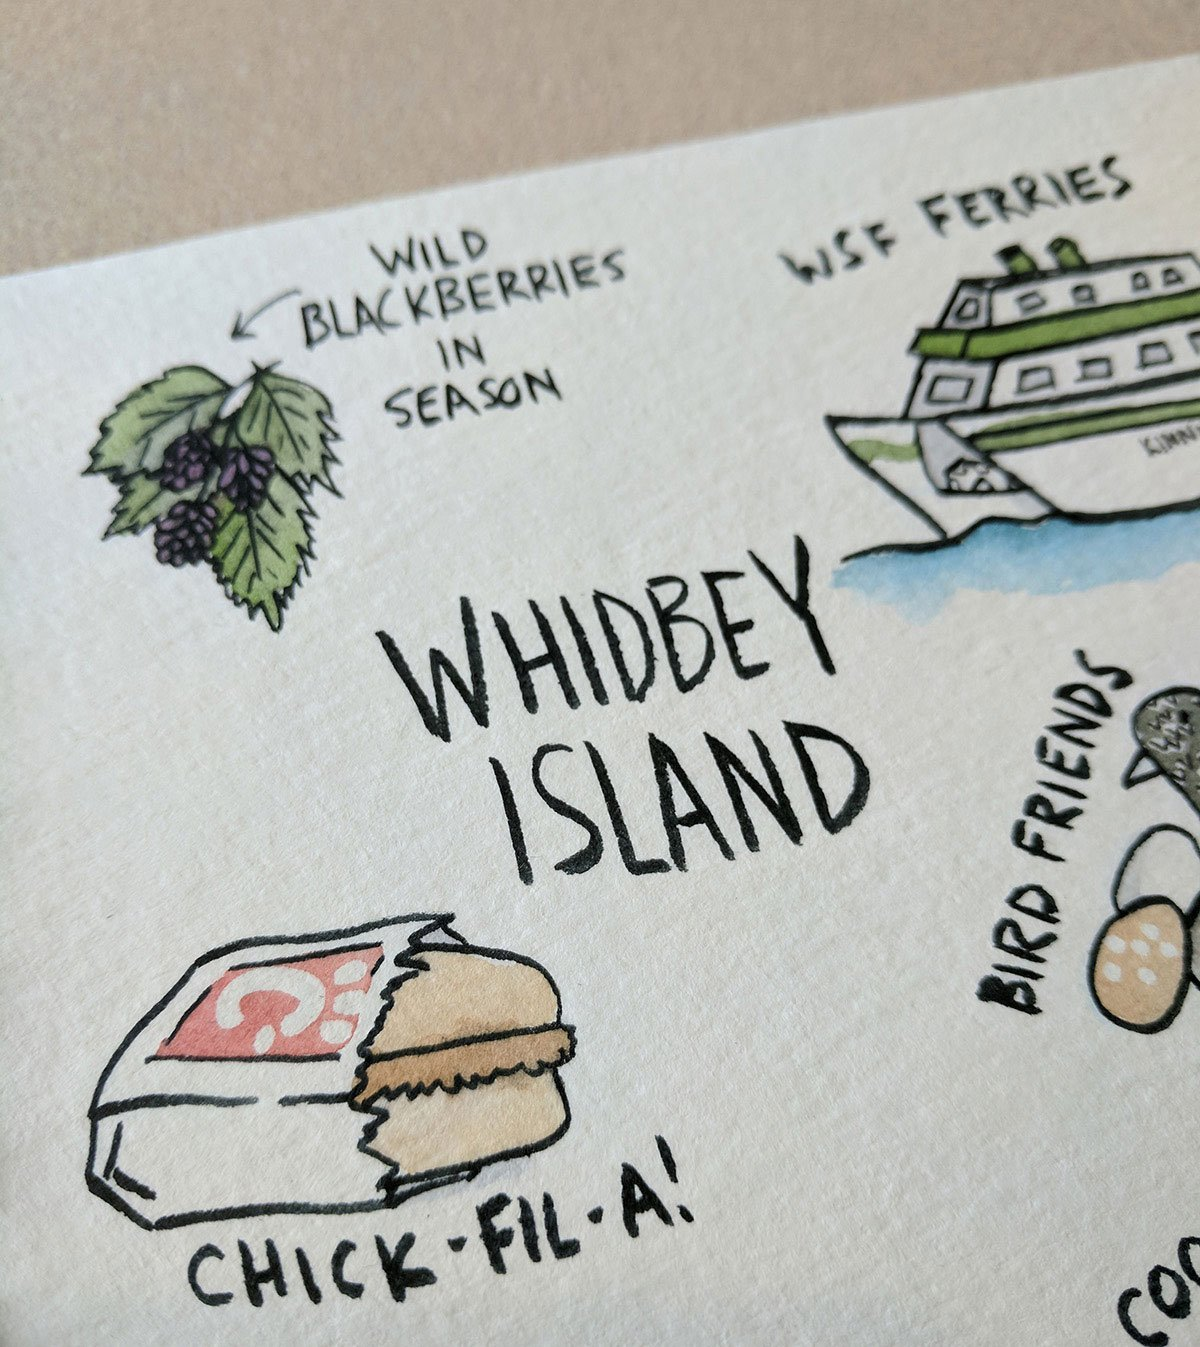 Hh travel whidbey island 64